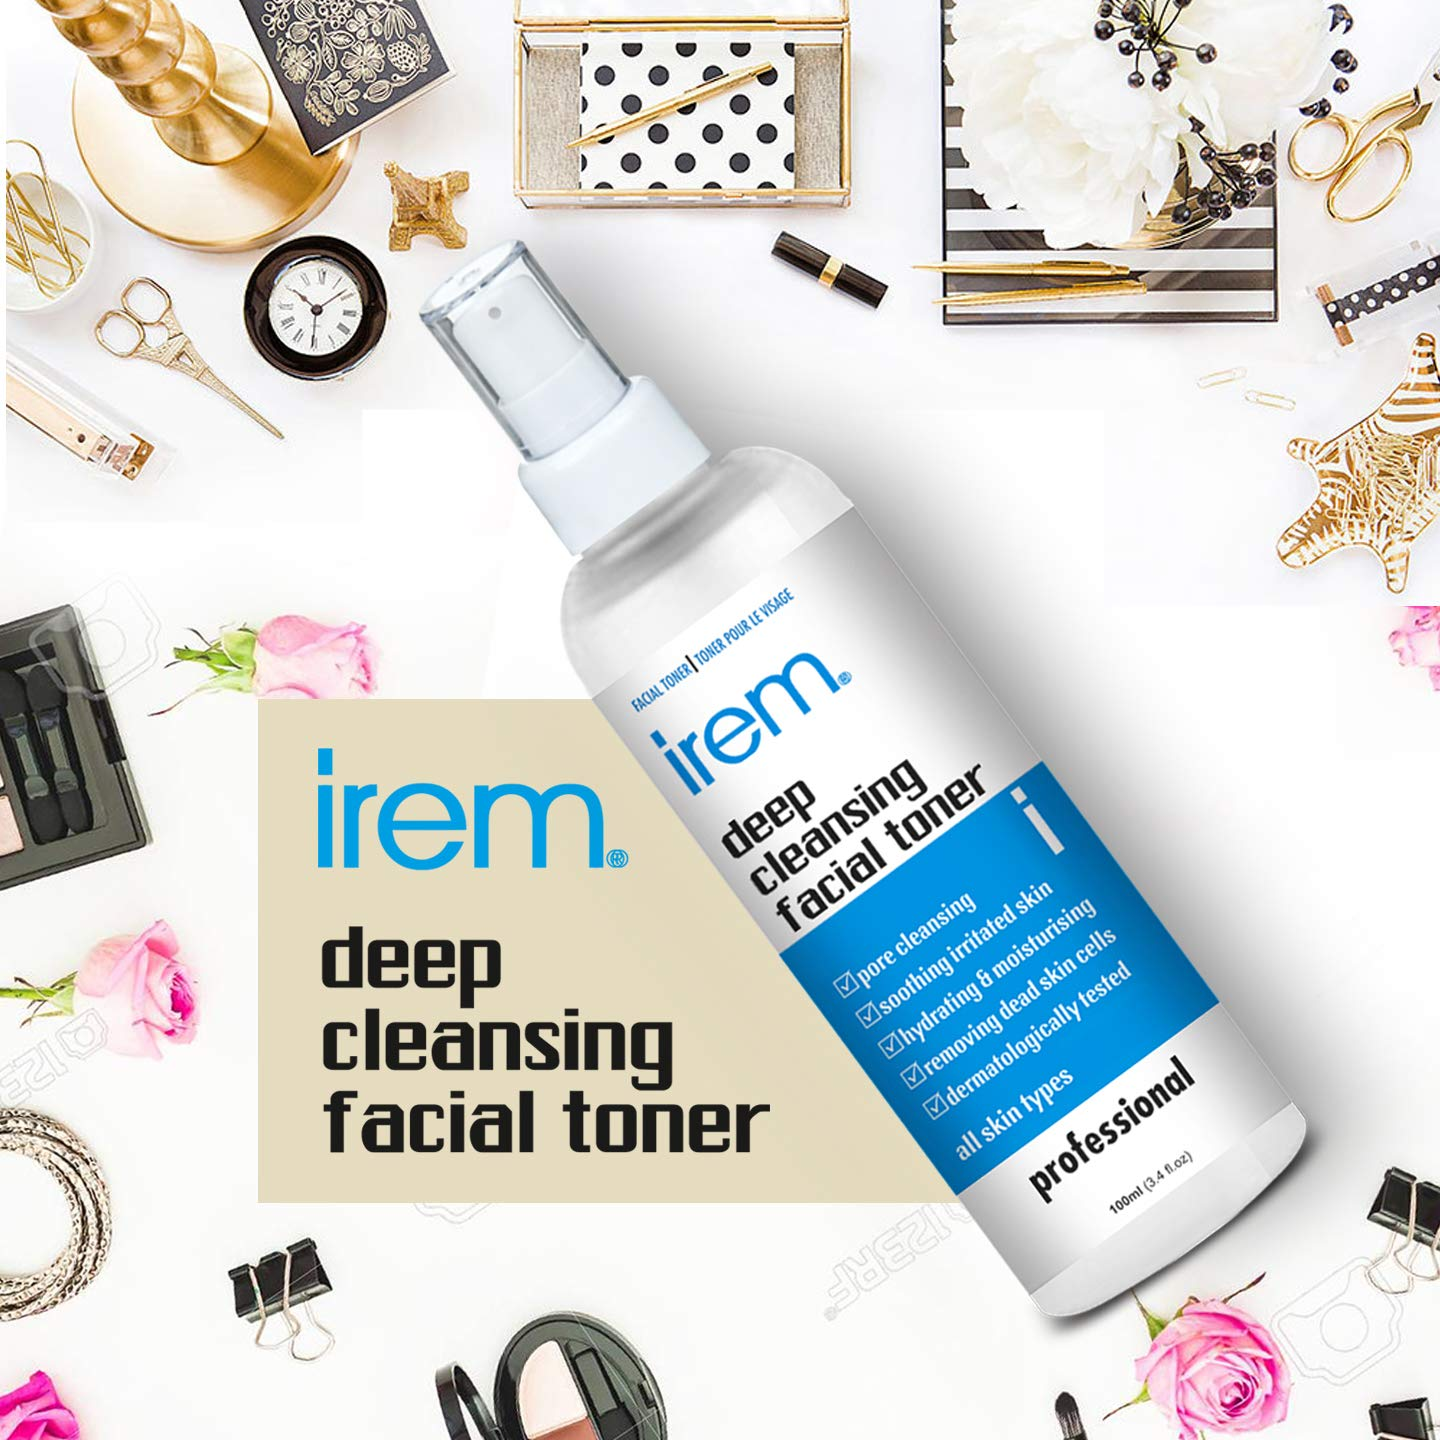 Irem Deep Cleansing Facial Toner for all skin types - Pore minimizing, Soothing & Hydrating contains Witch hazel, Aloe vera, Panthenol, Allantoin, Glycolic and more, 100m product image